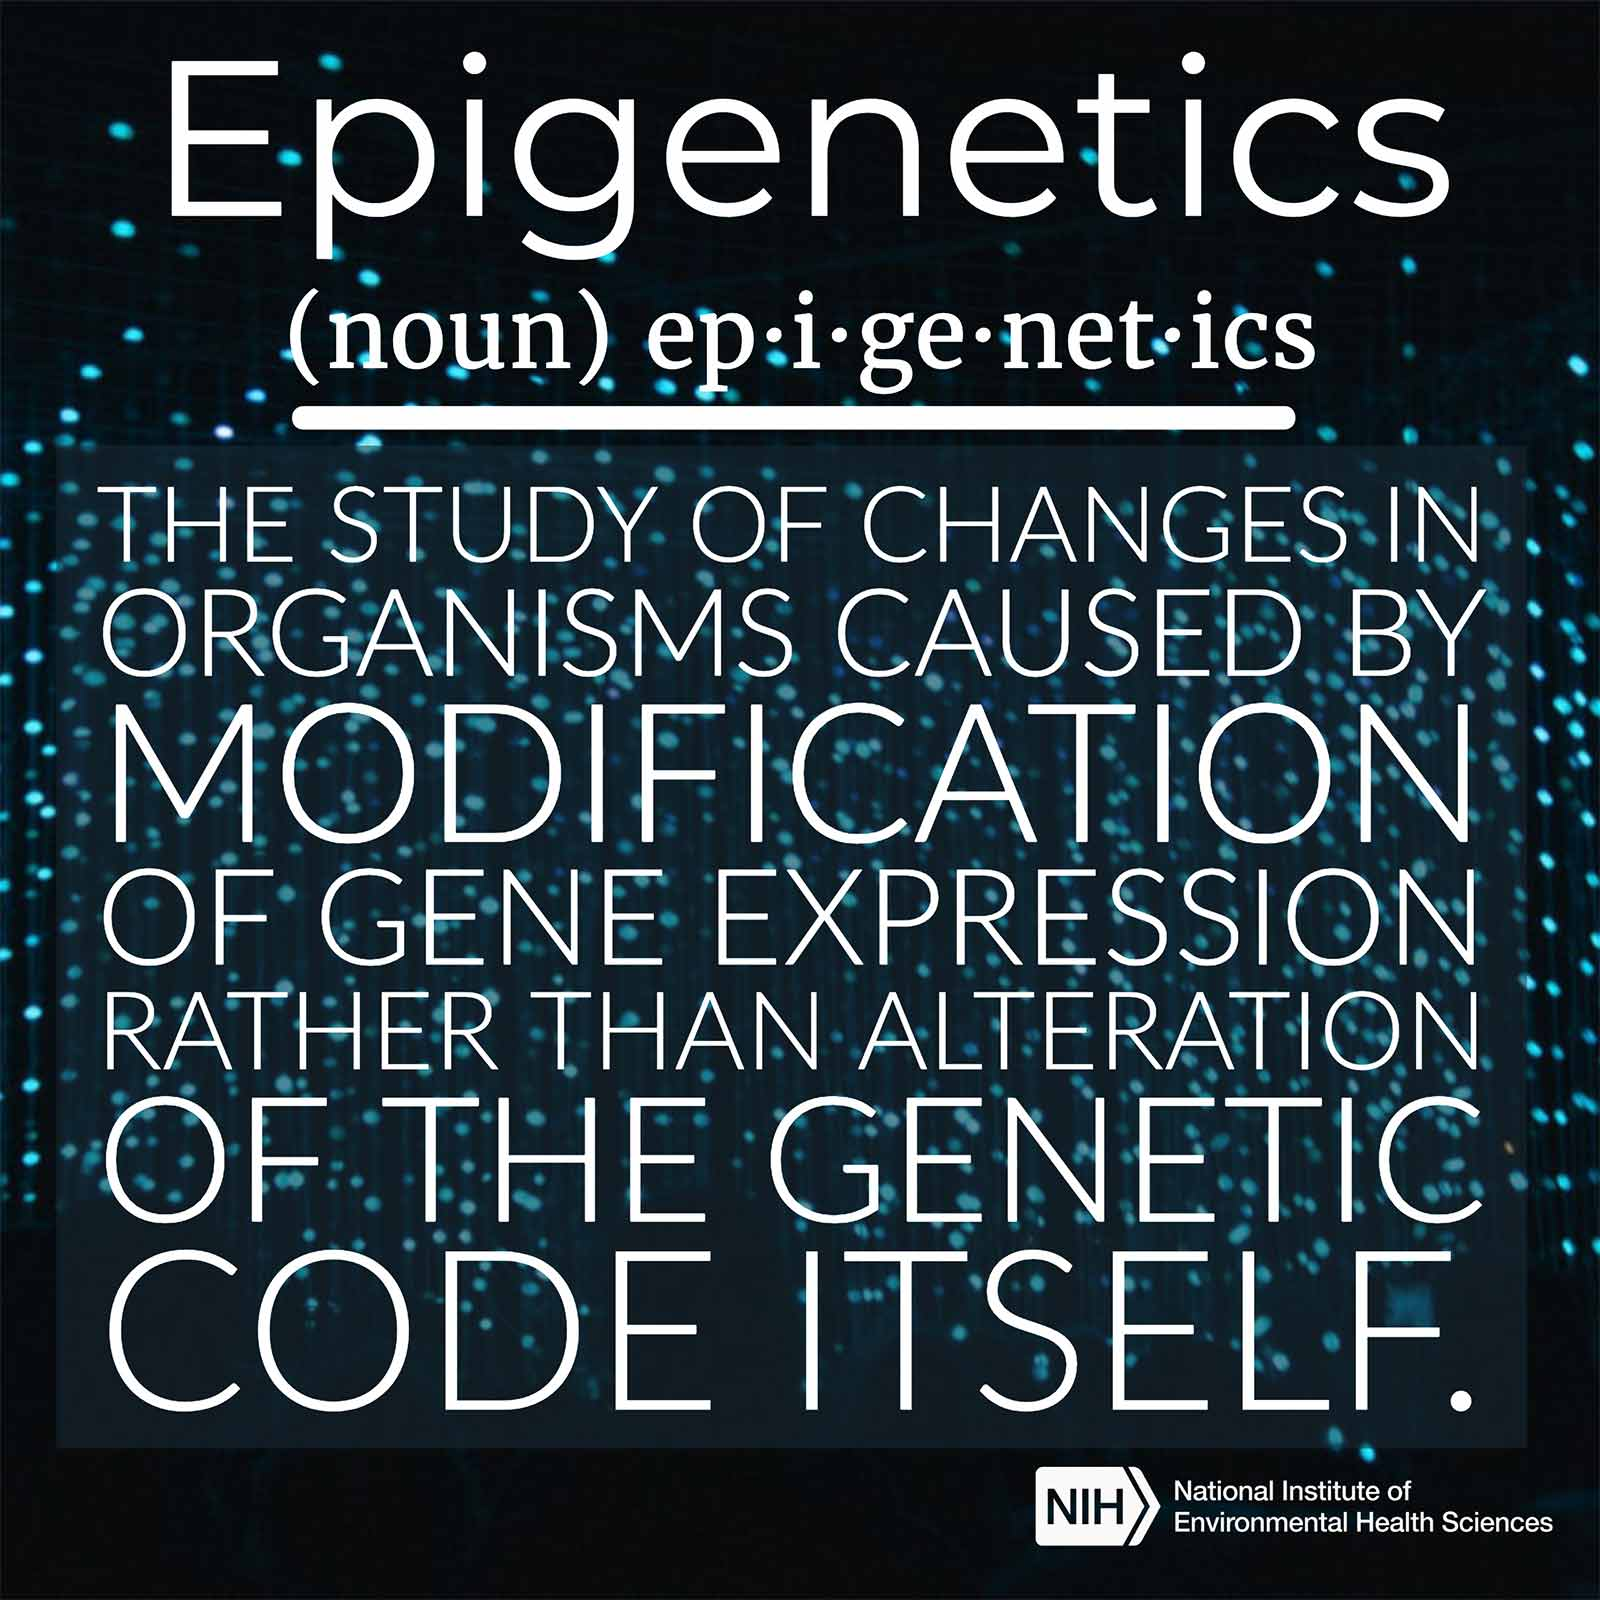 Epigenetics (noun) described as the study of changes in organisms caused by modification of gene expression rather than alteration of the genetic code itself.